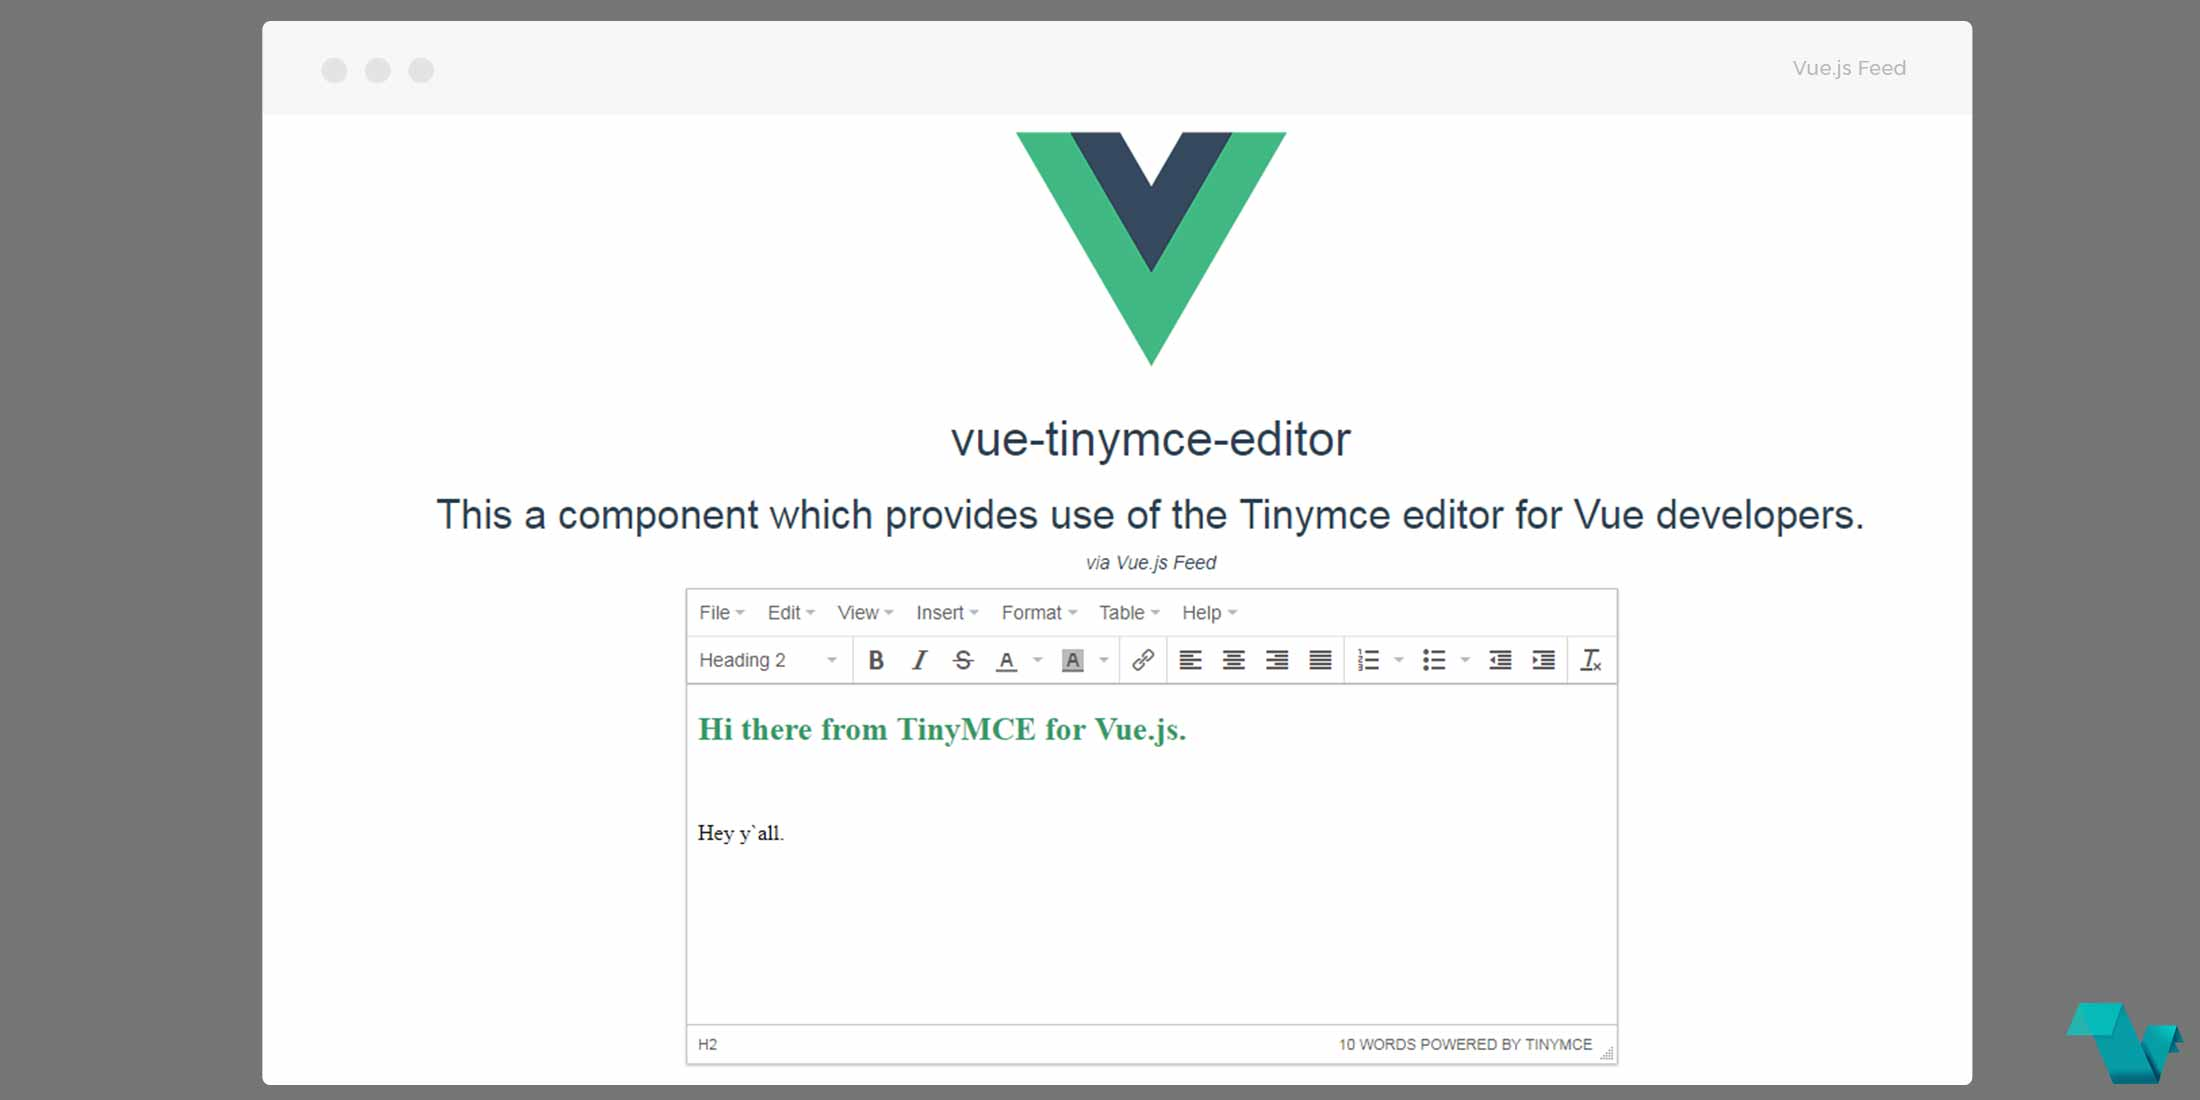 Tinymce Editor Component for Vue js - Vue js Feed